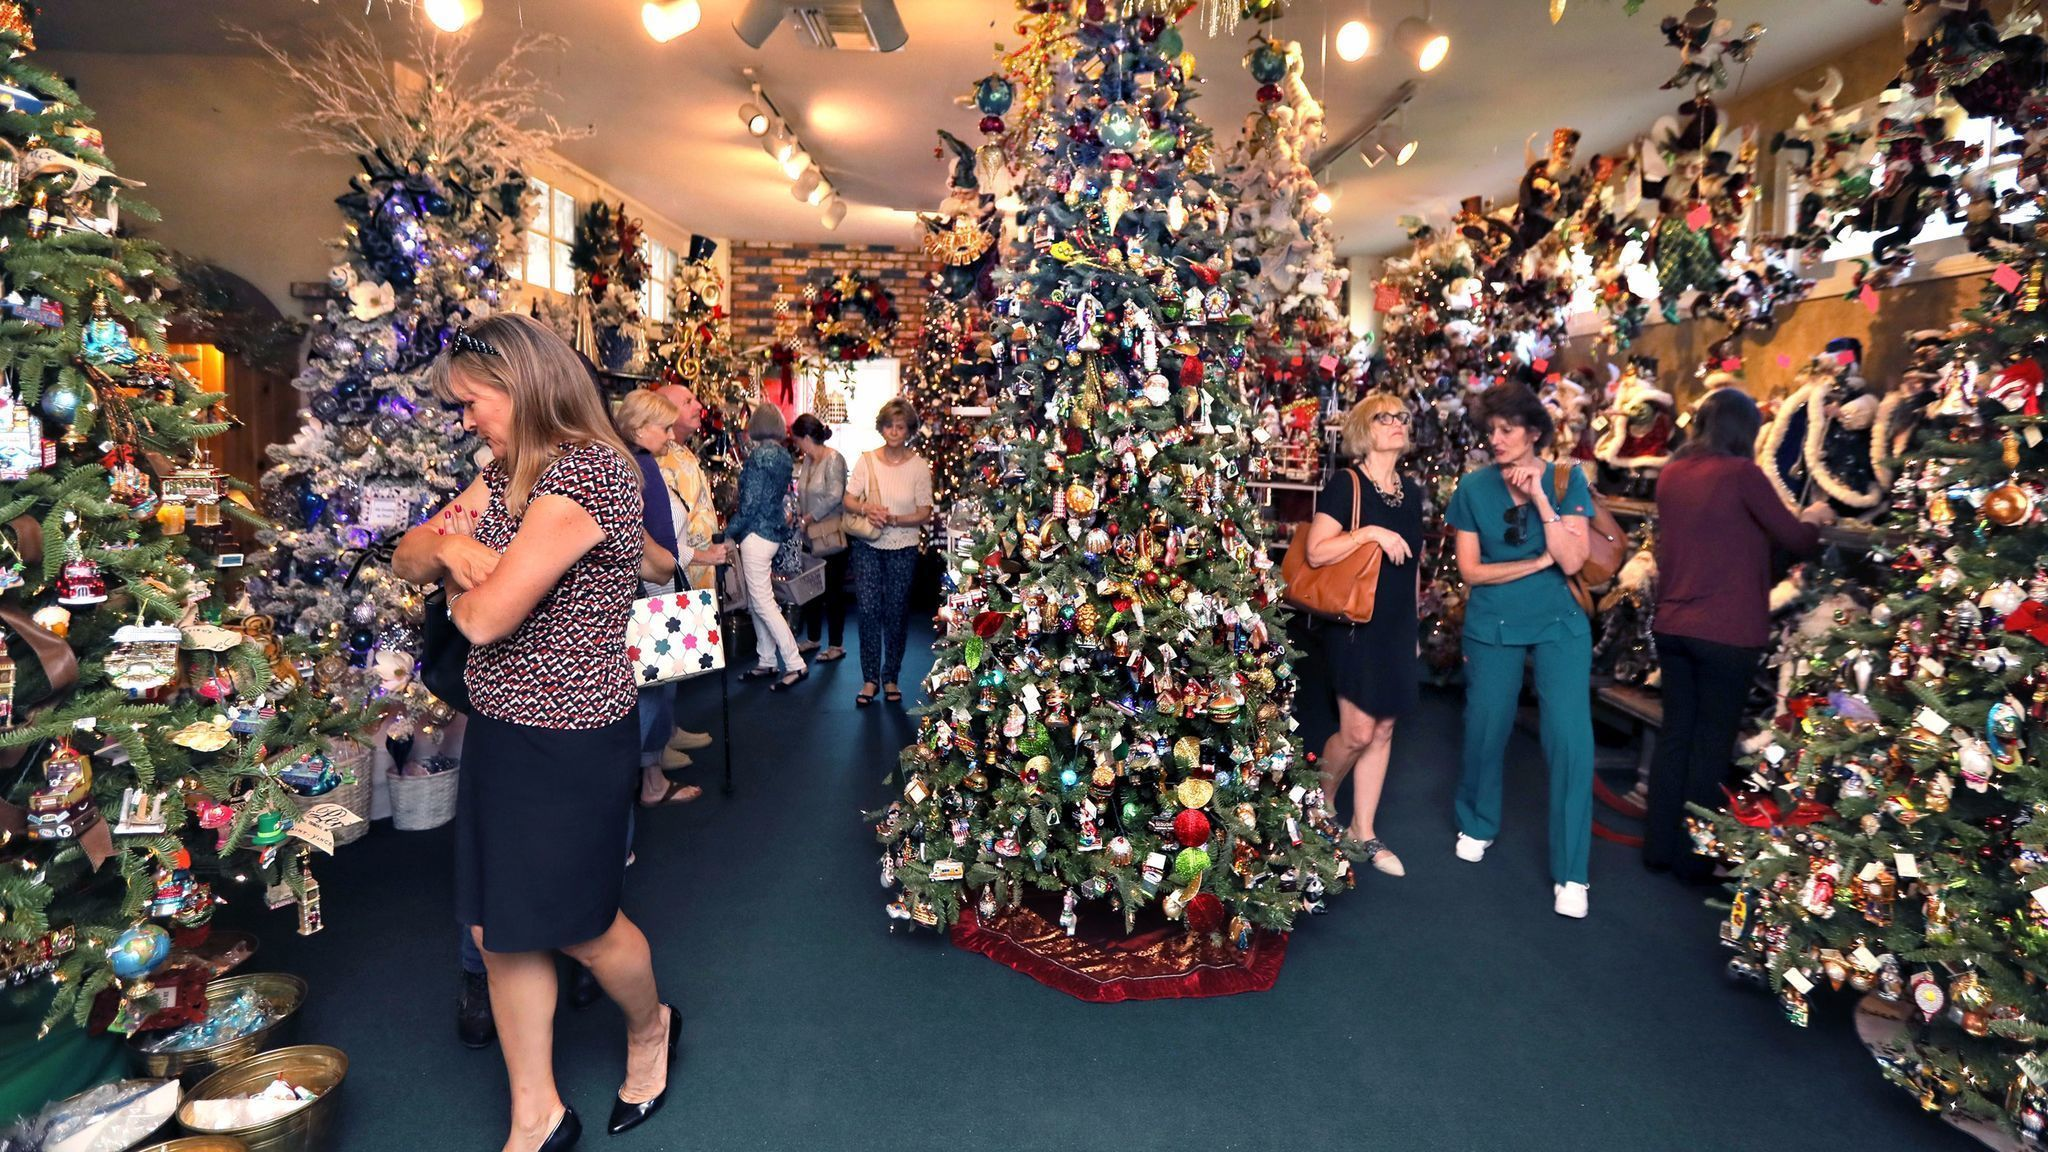 A holiday wonderland opens again in Escondido - The San Diego Union ...